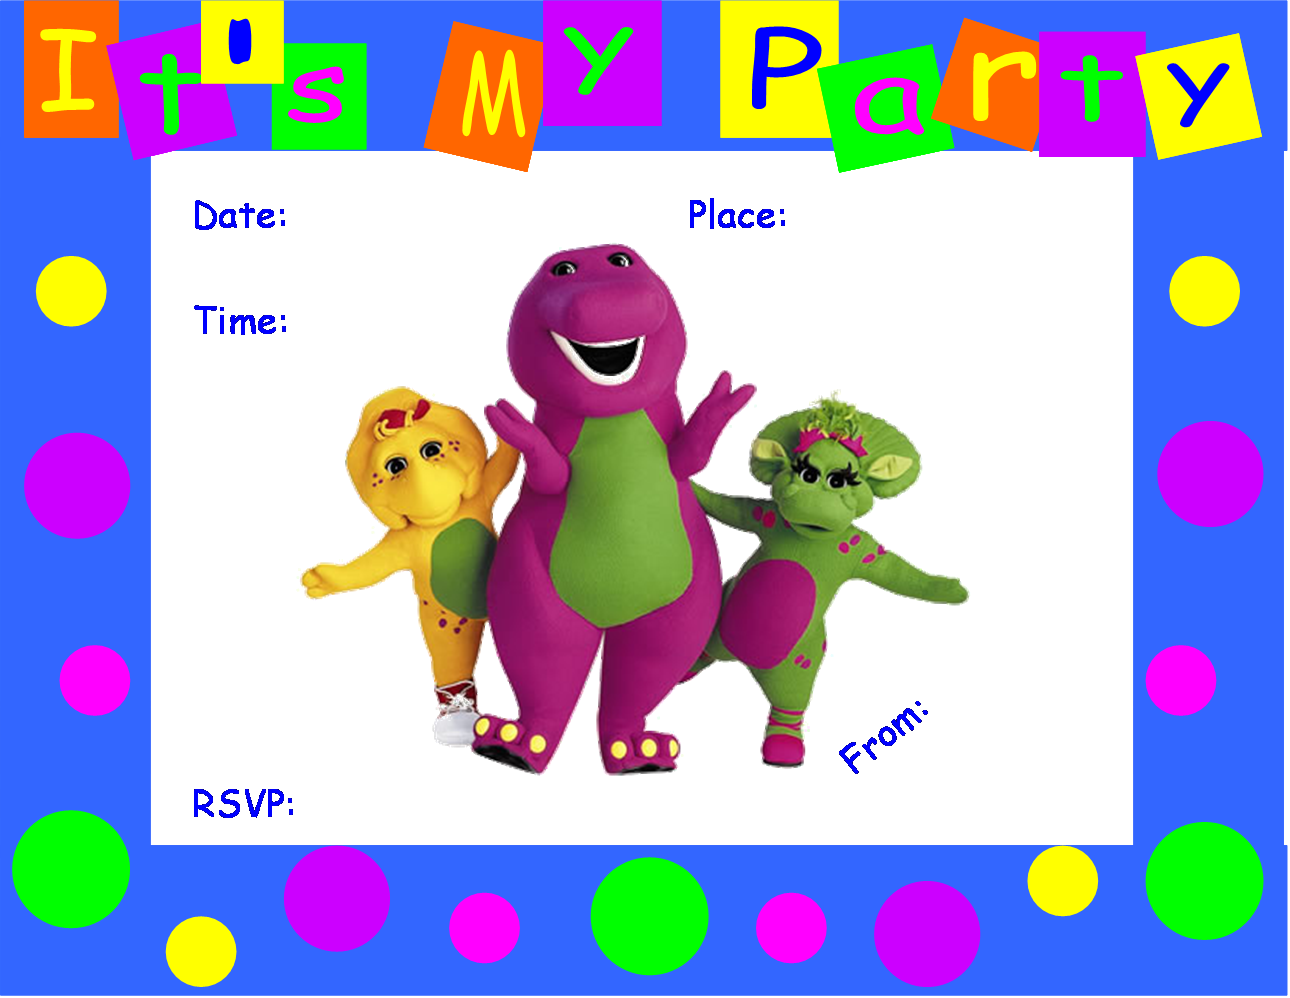 FREE Barney Birthday Party Invitation Barney Pinterest - Birthday invitation maker in dubai